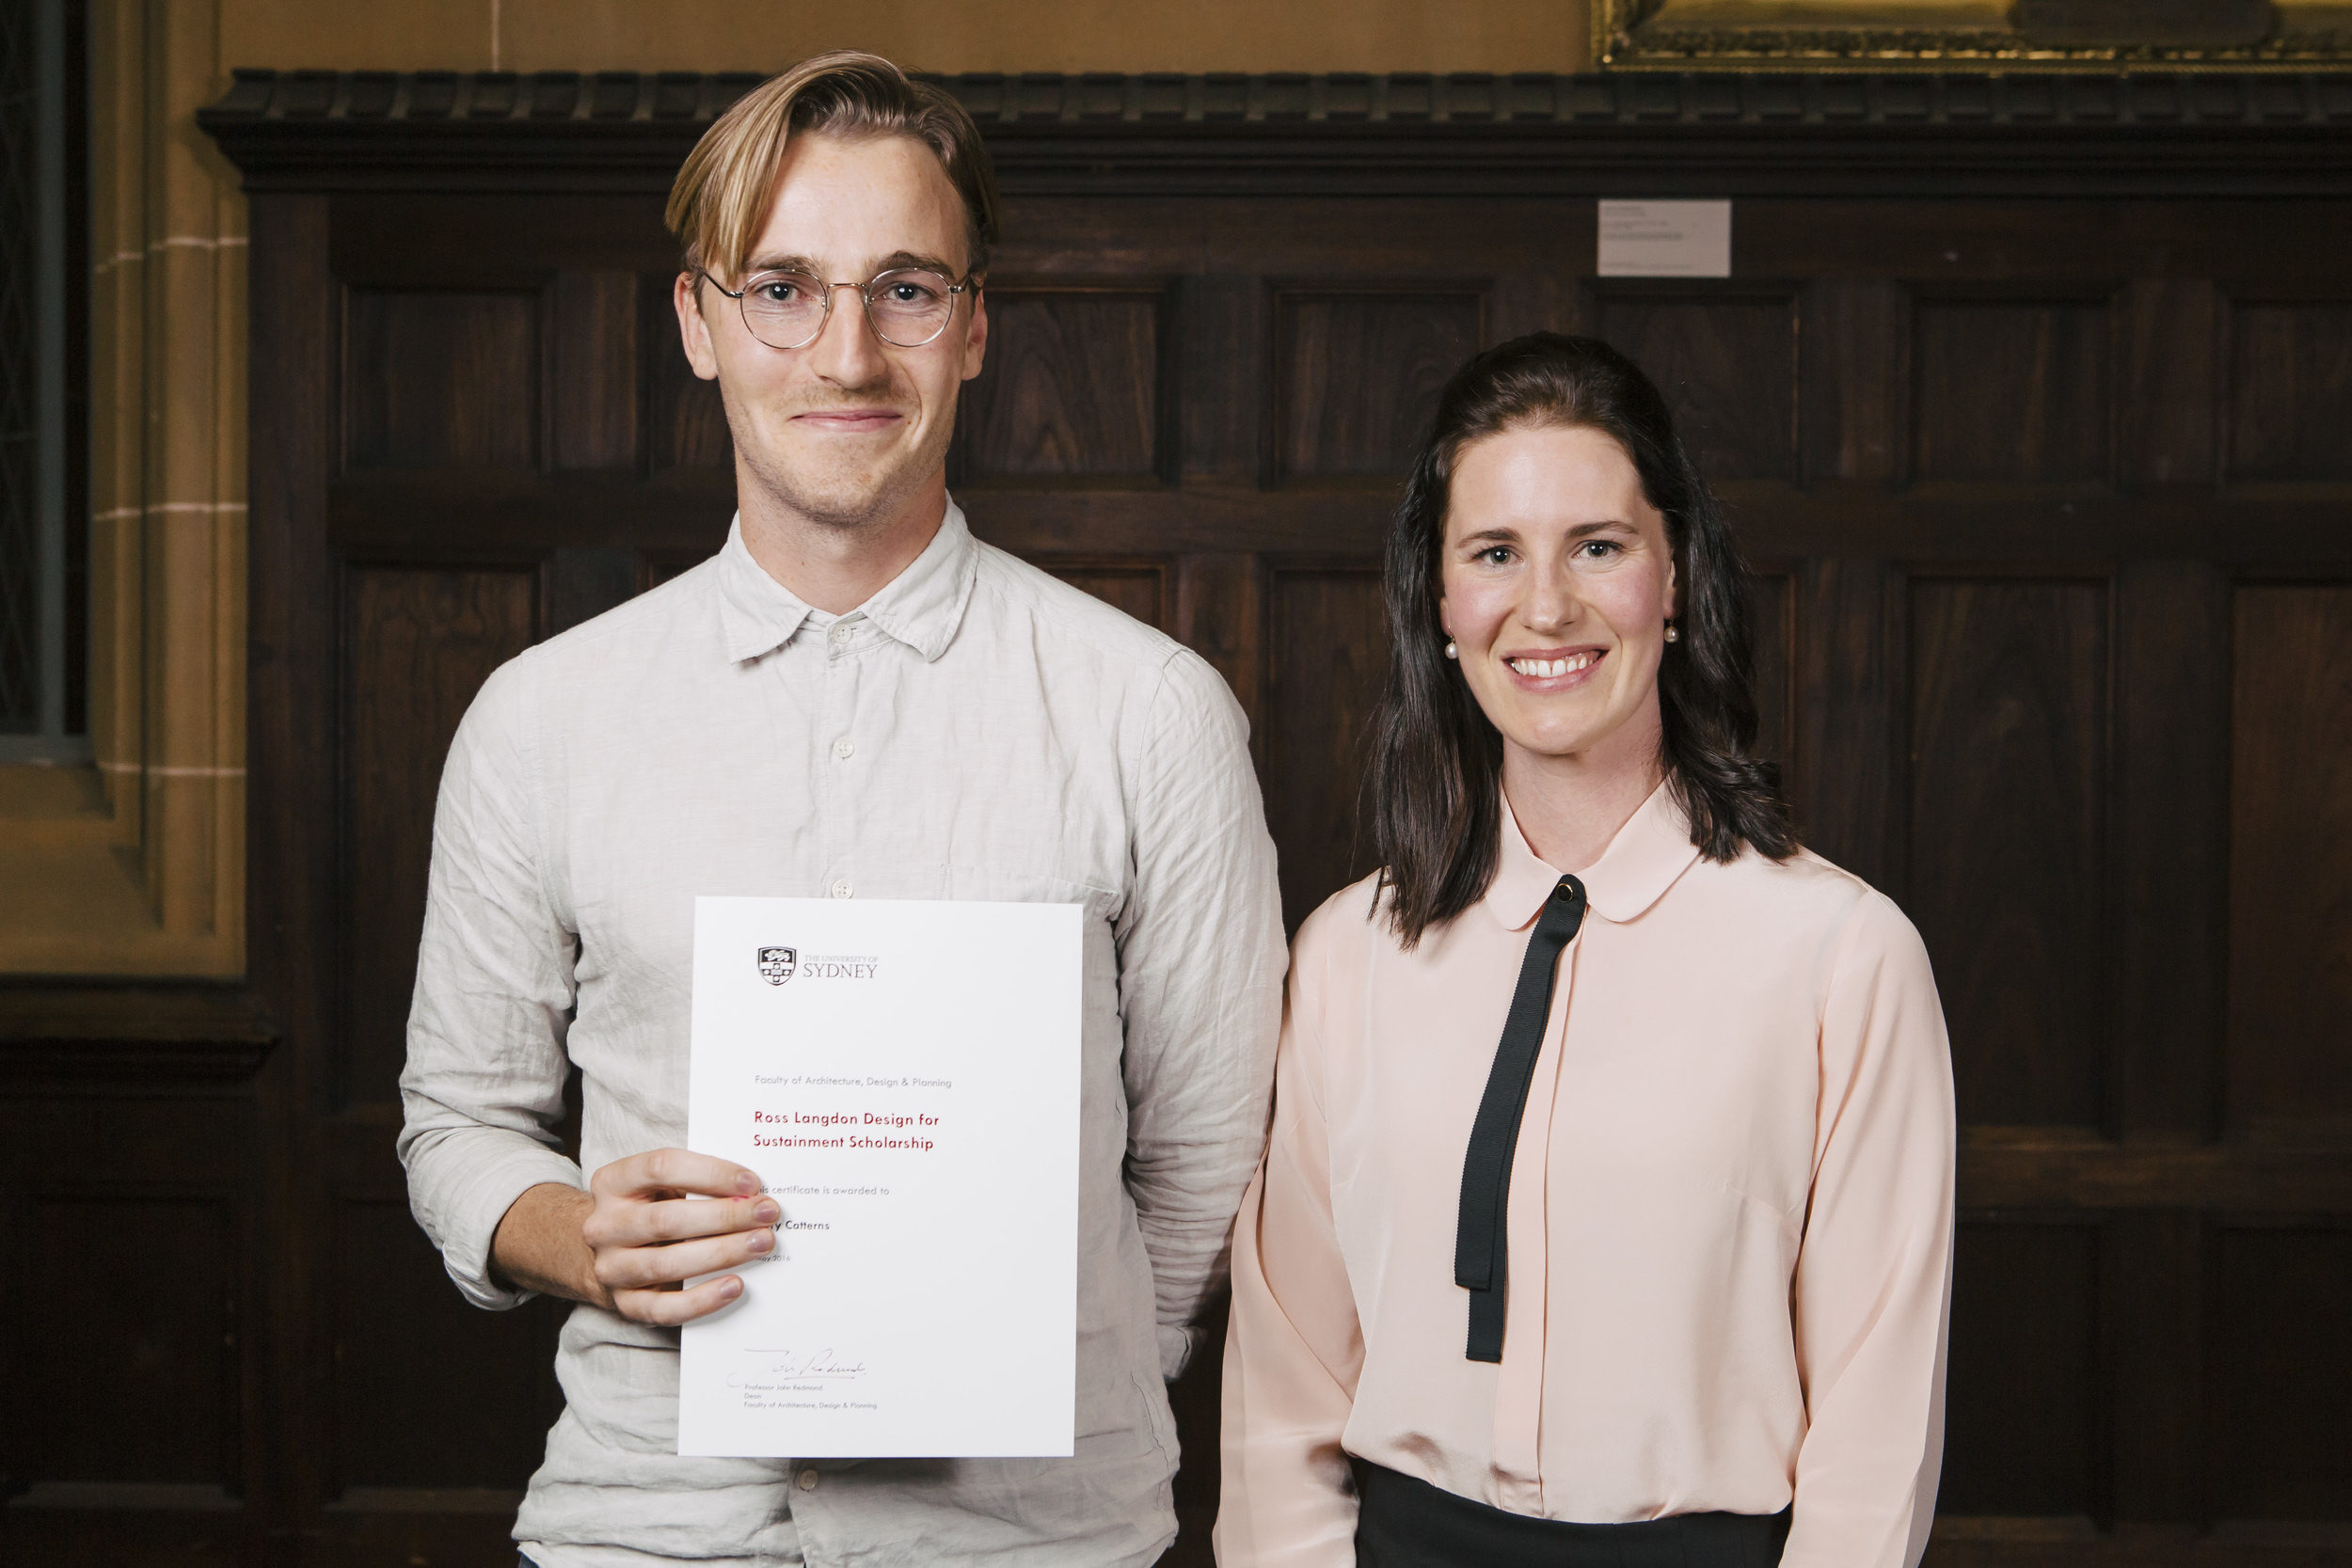 USYD_Scholarships&Prizes_03_05_16_credit_Jacquie_Manning_75.jpg